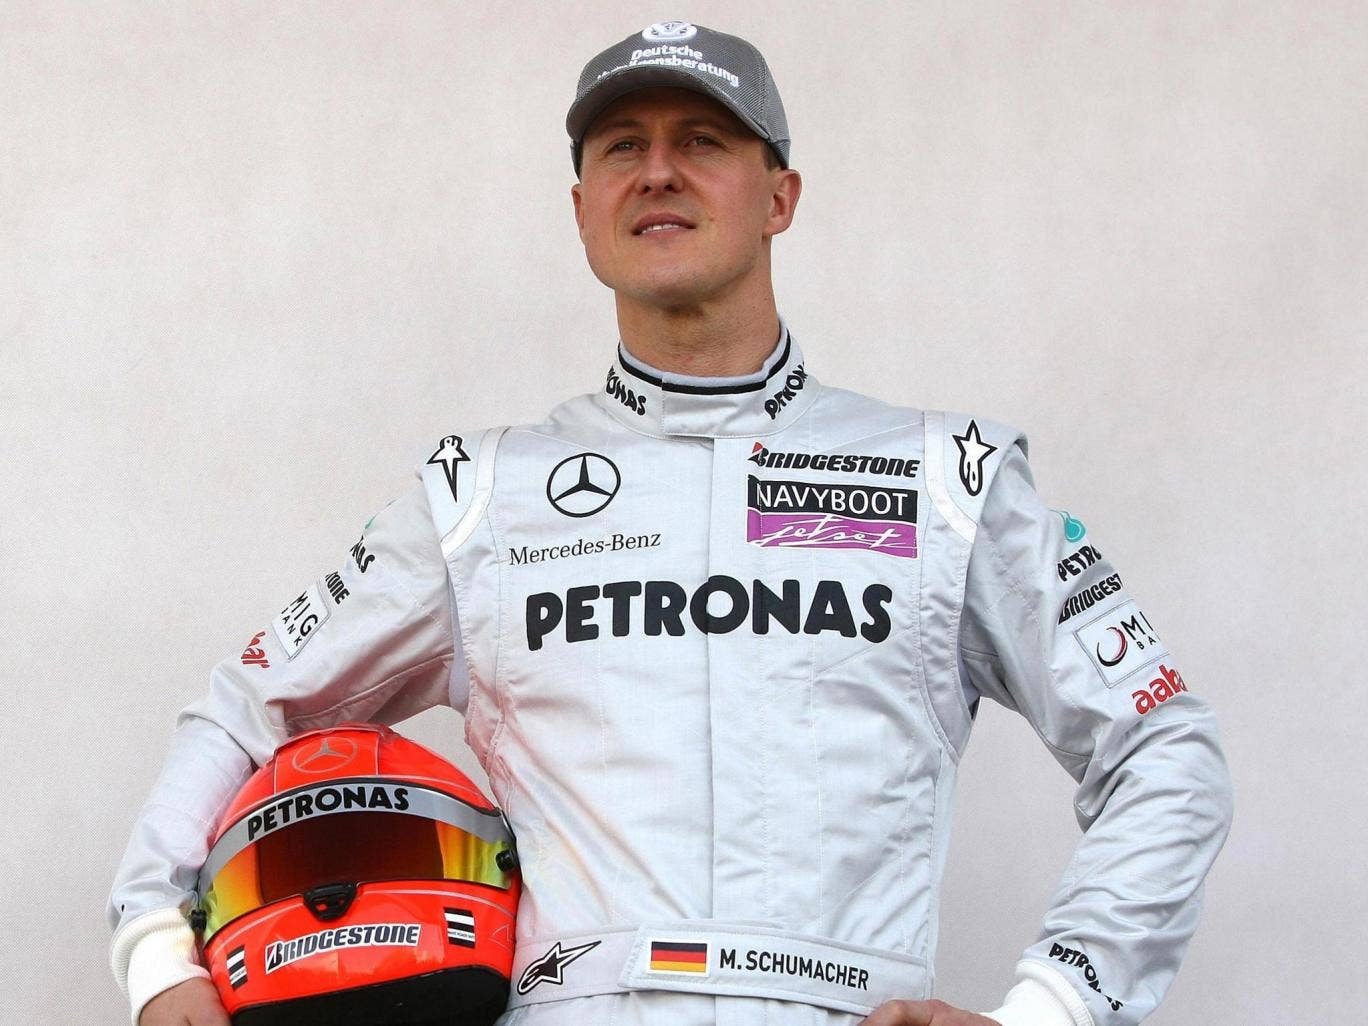 Michael Schumacher in 2010. The seven-times Formula One world champion has been in a coma for more than 13 weeks